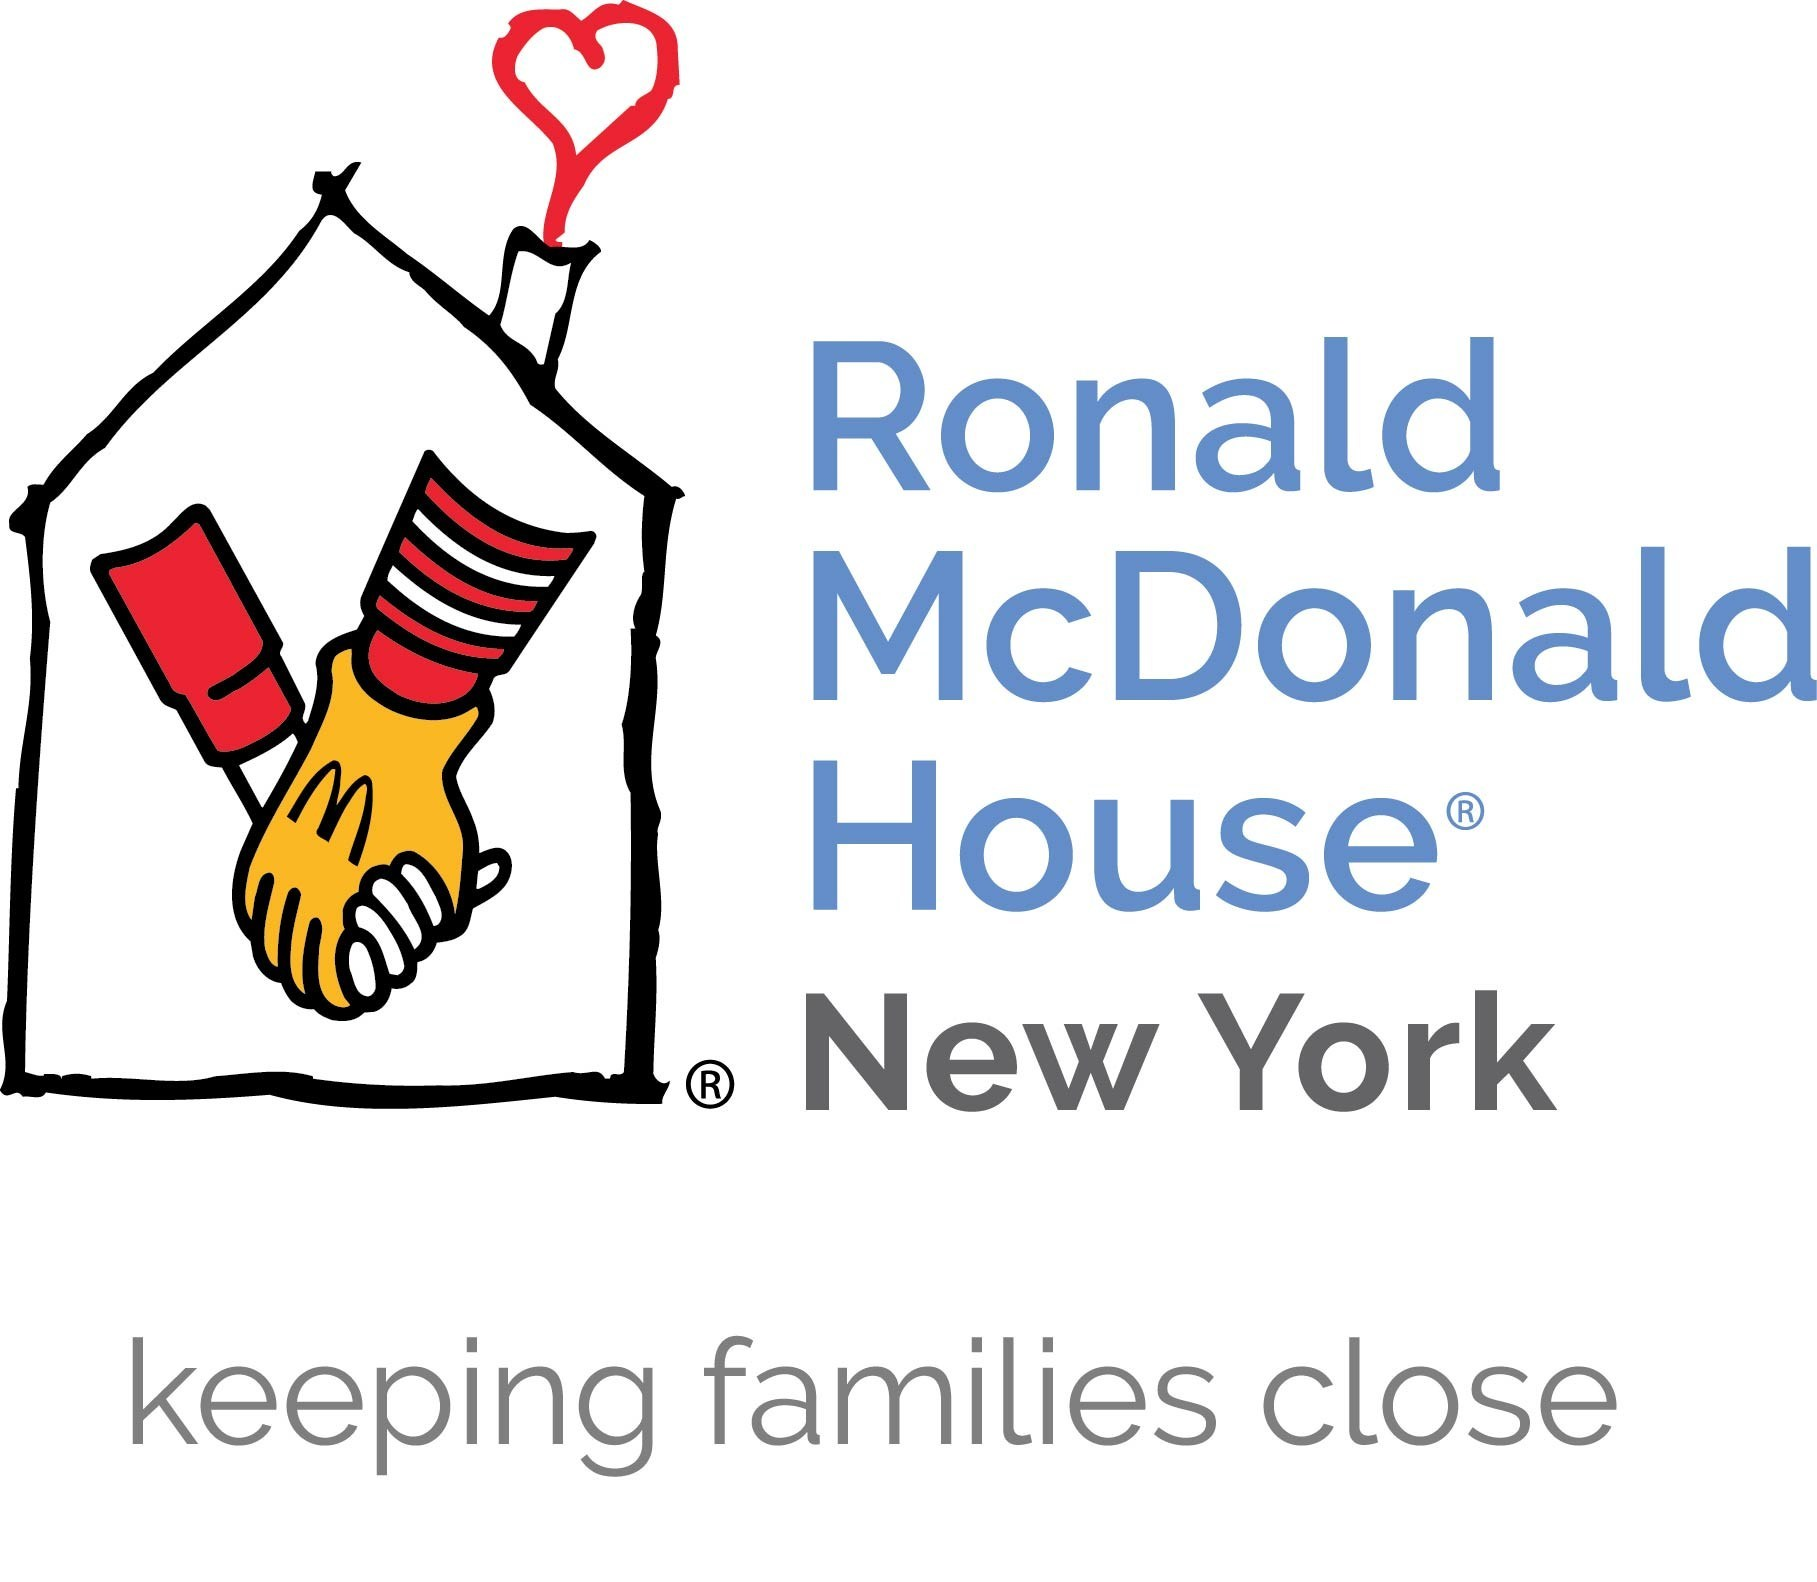 (PRNewsfoto/Ronald McDonald House New York)